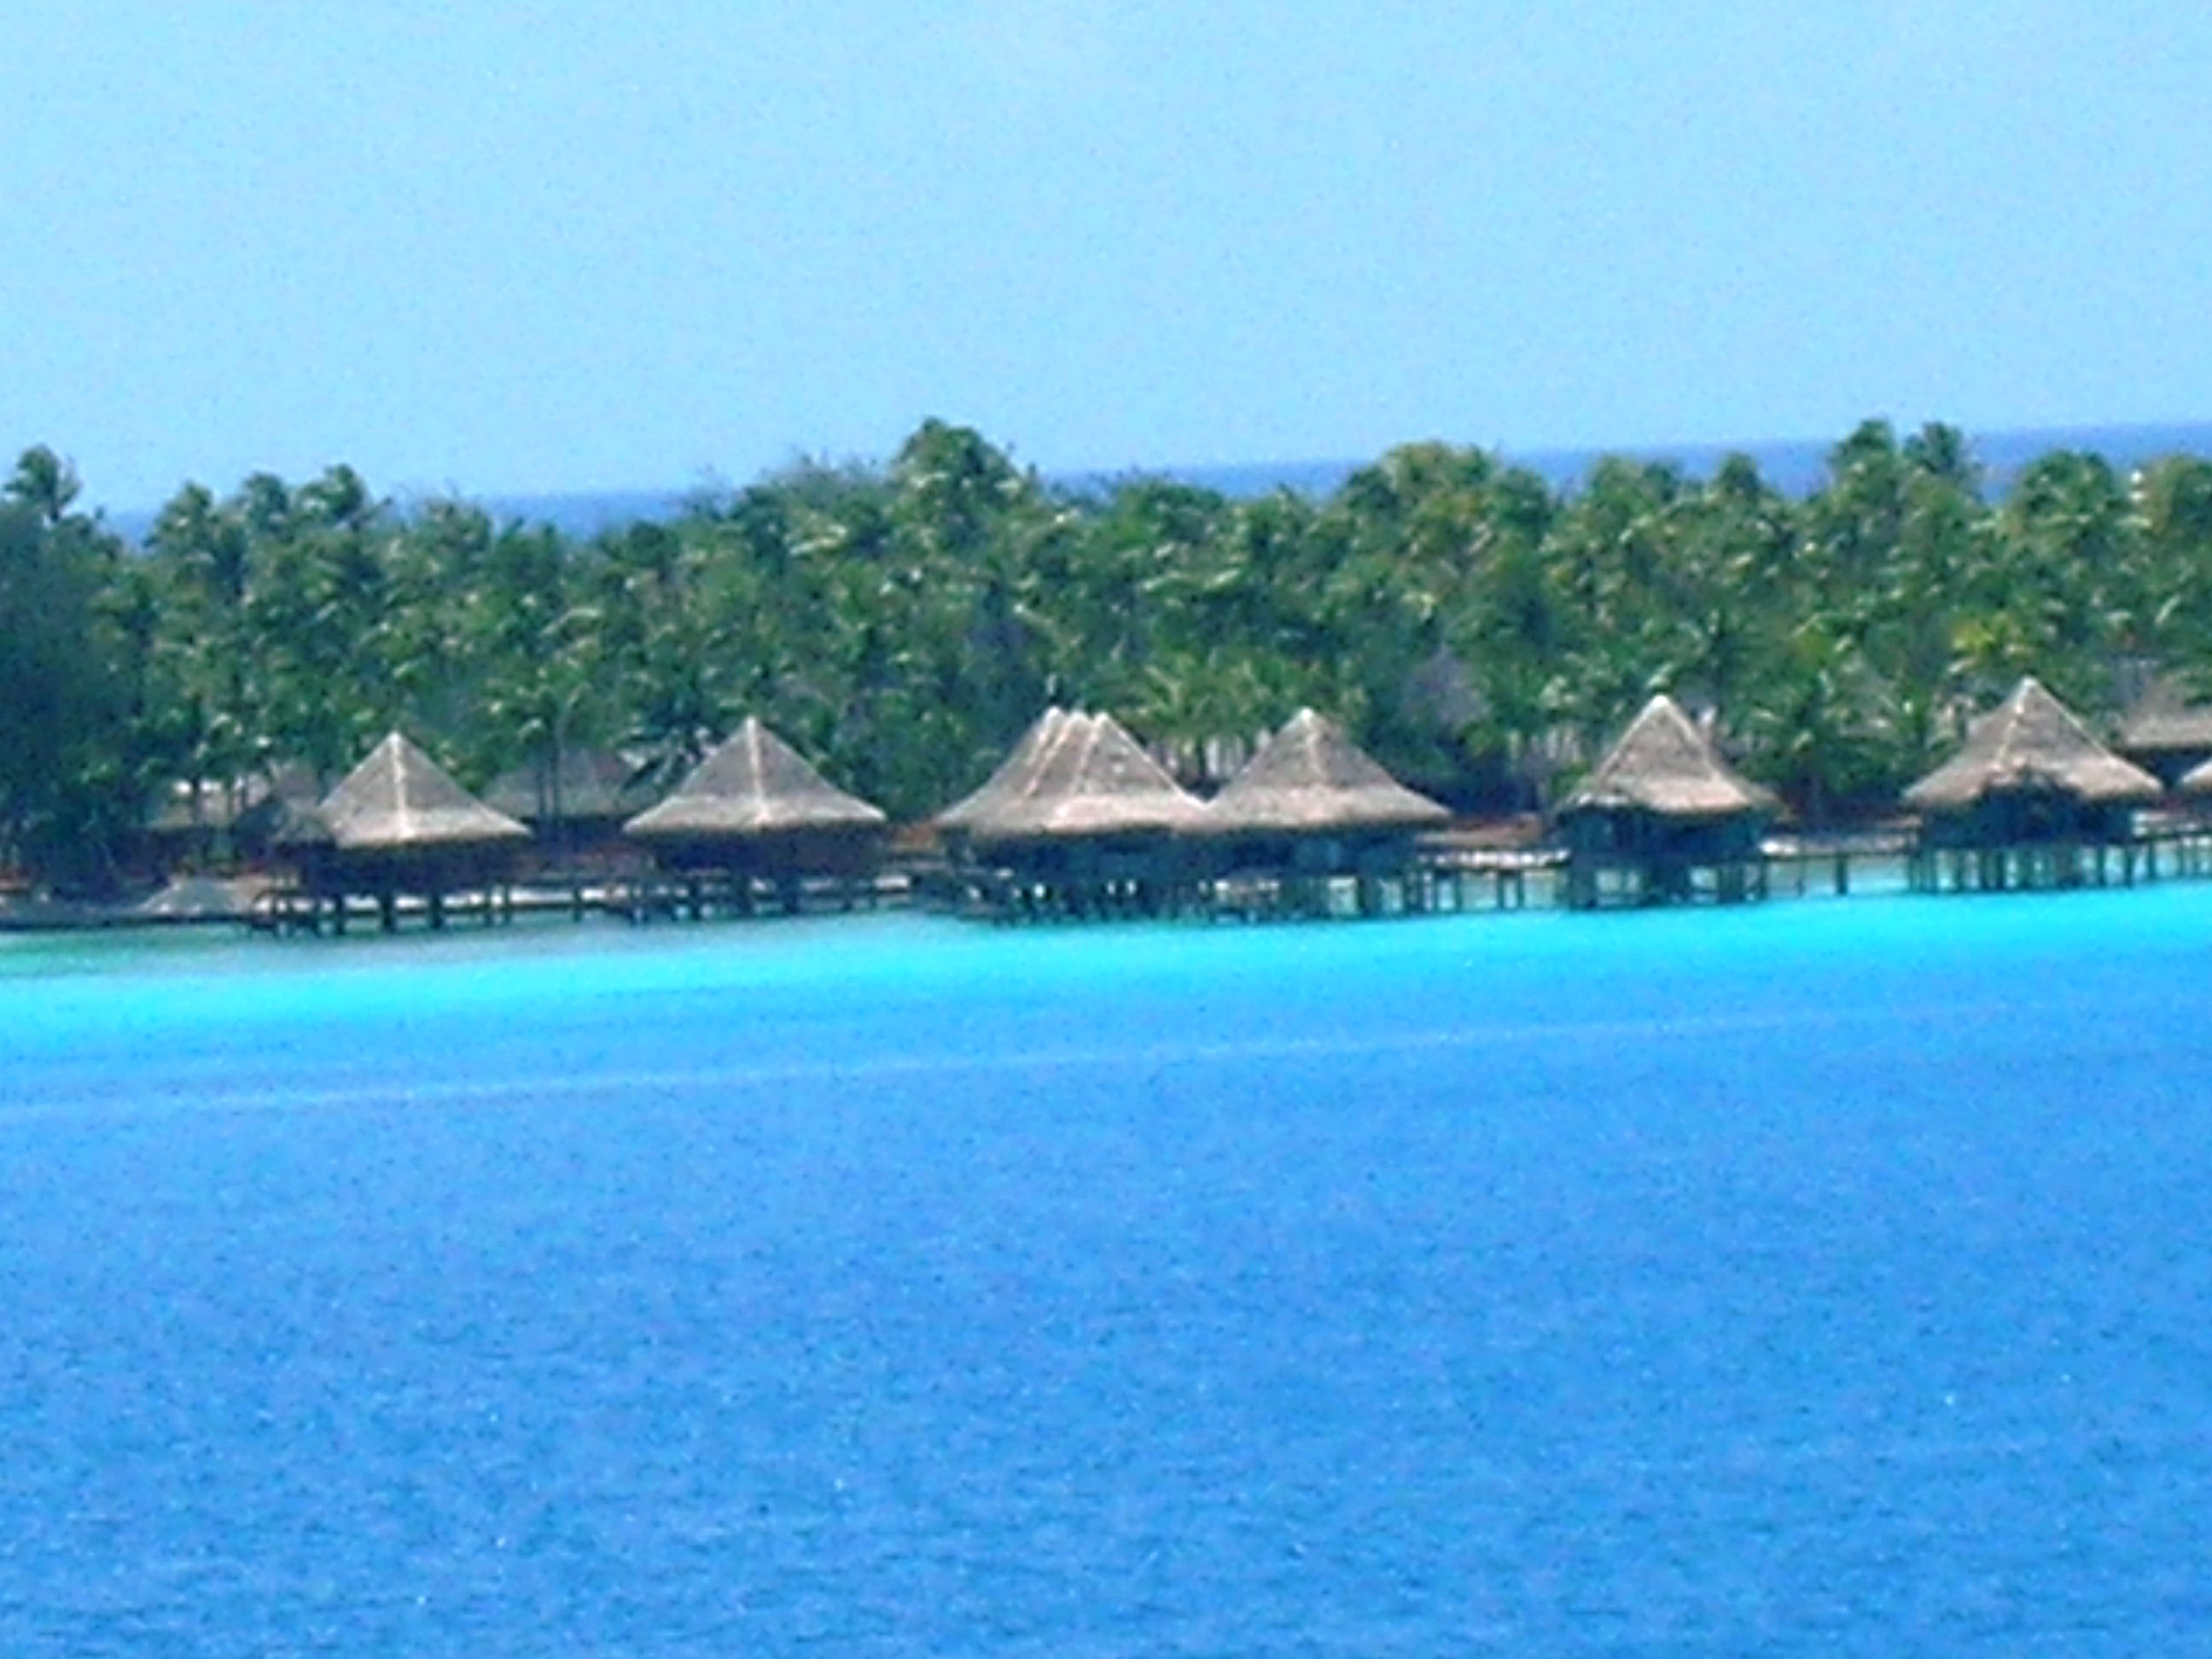 Rangiroa French Polynesia  city pictures gallery : March 25, 2011: Rangiroa, Society Islands, French Polynesia ...